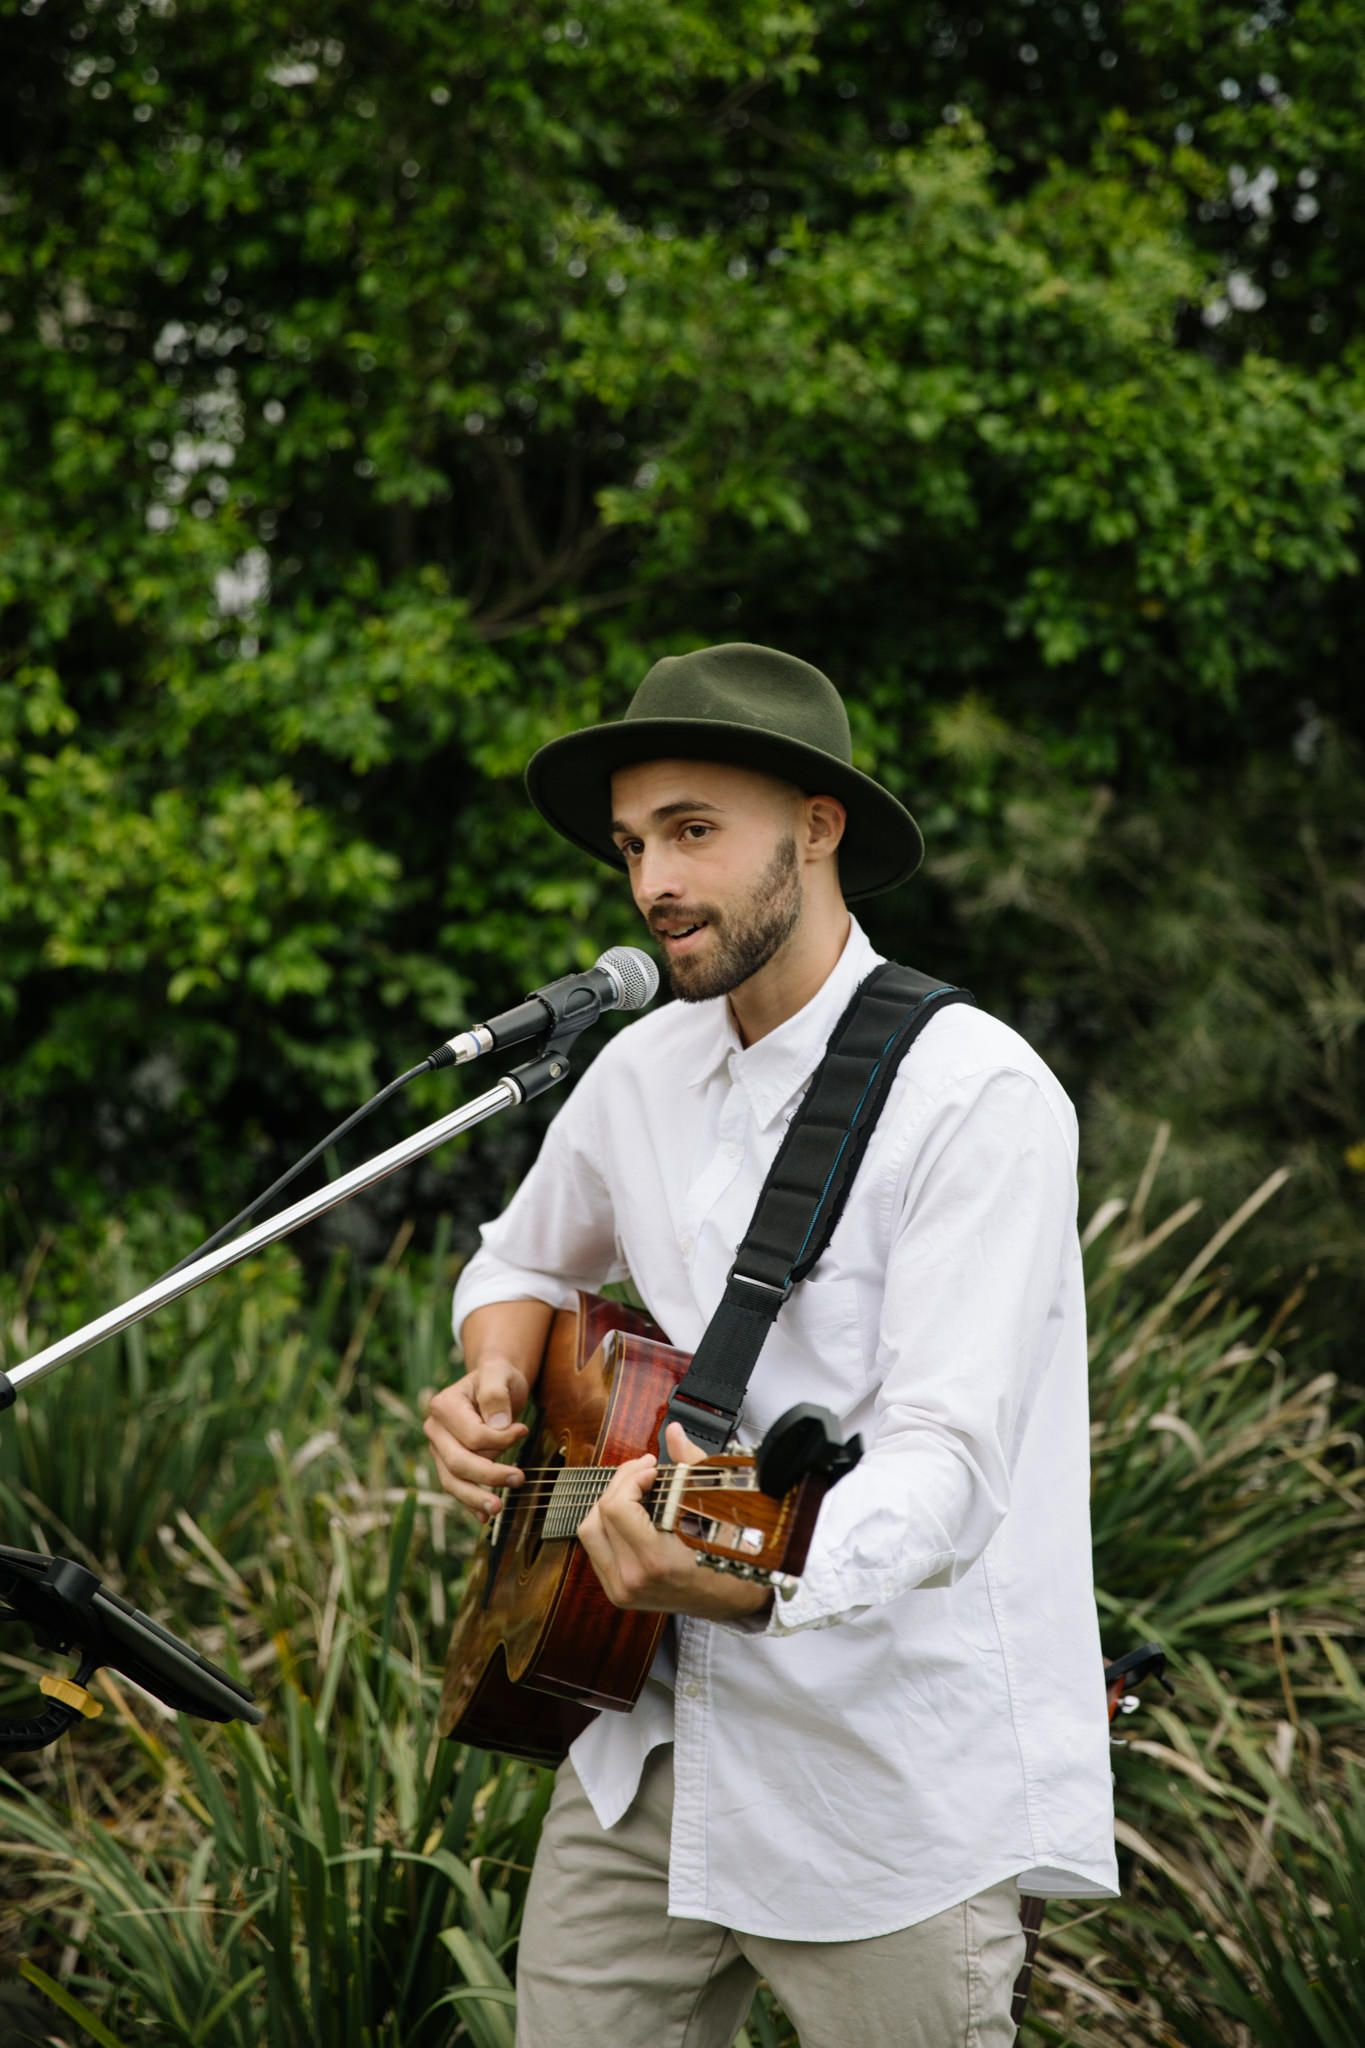 mark-crotti-sydney-wedding-singer-acoustic-live.jpg